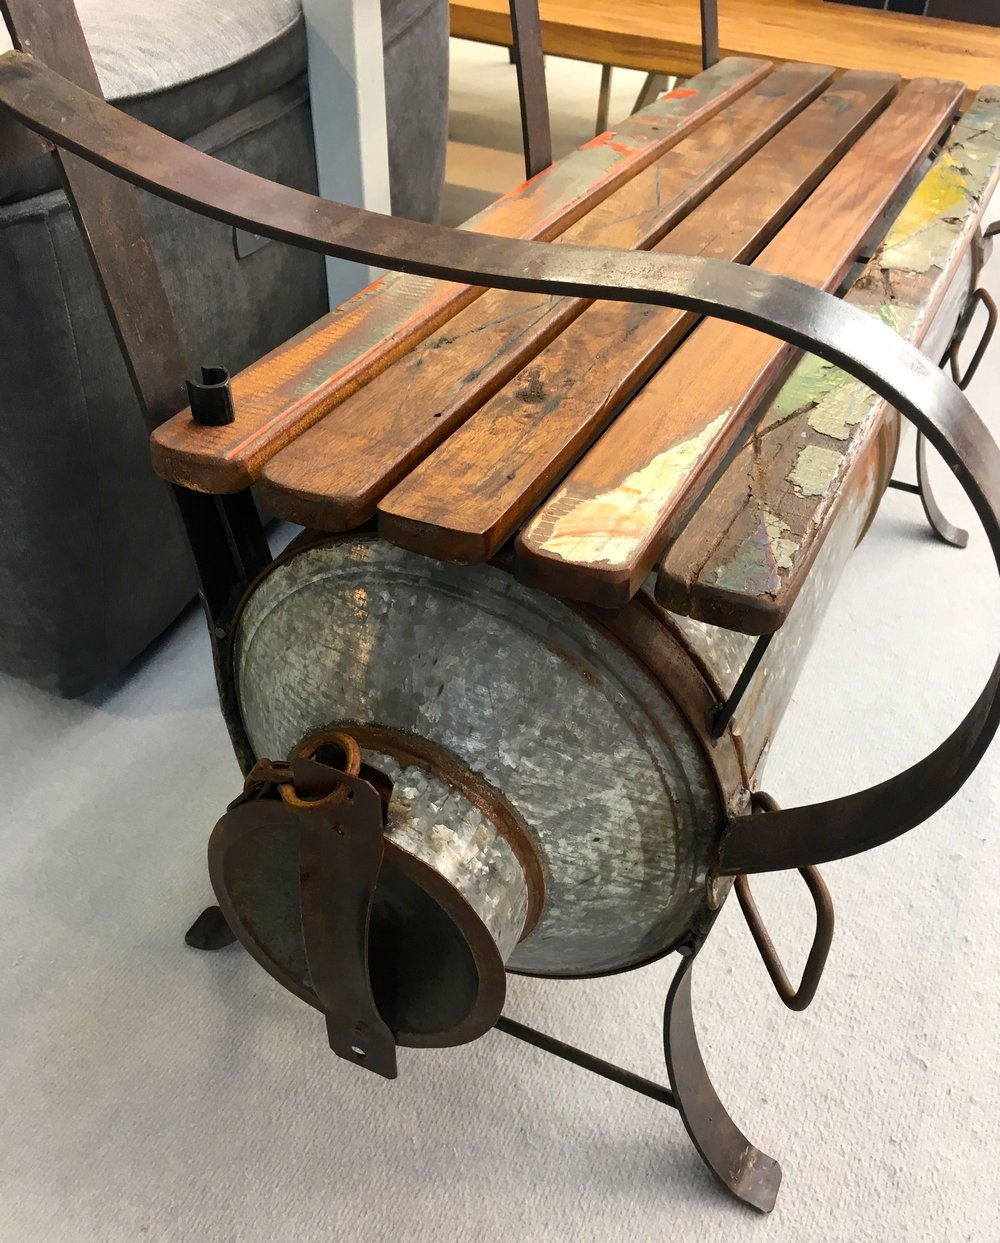 An upcycled milk churn bench at the Ideal Home Show